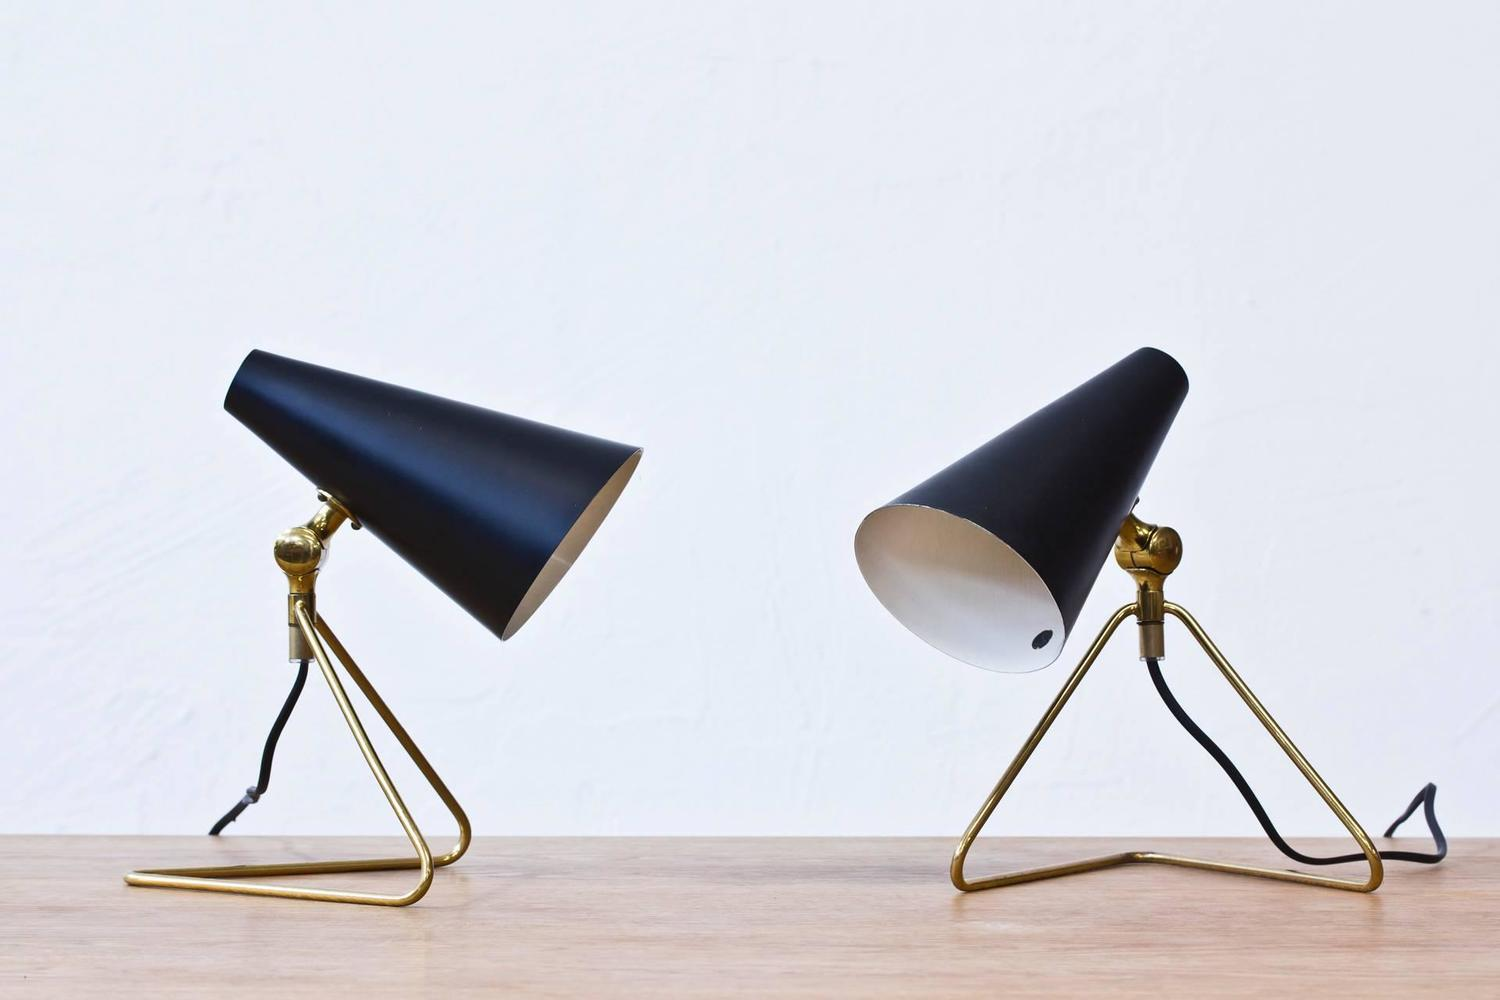 Wall Desk Lighting : Swedish, 1950s Desk/Wall Lamps at 1stdibs